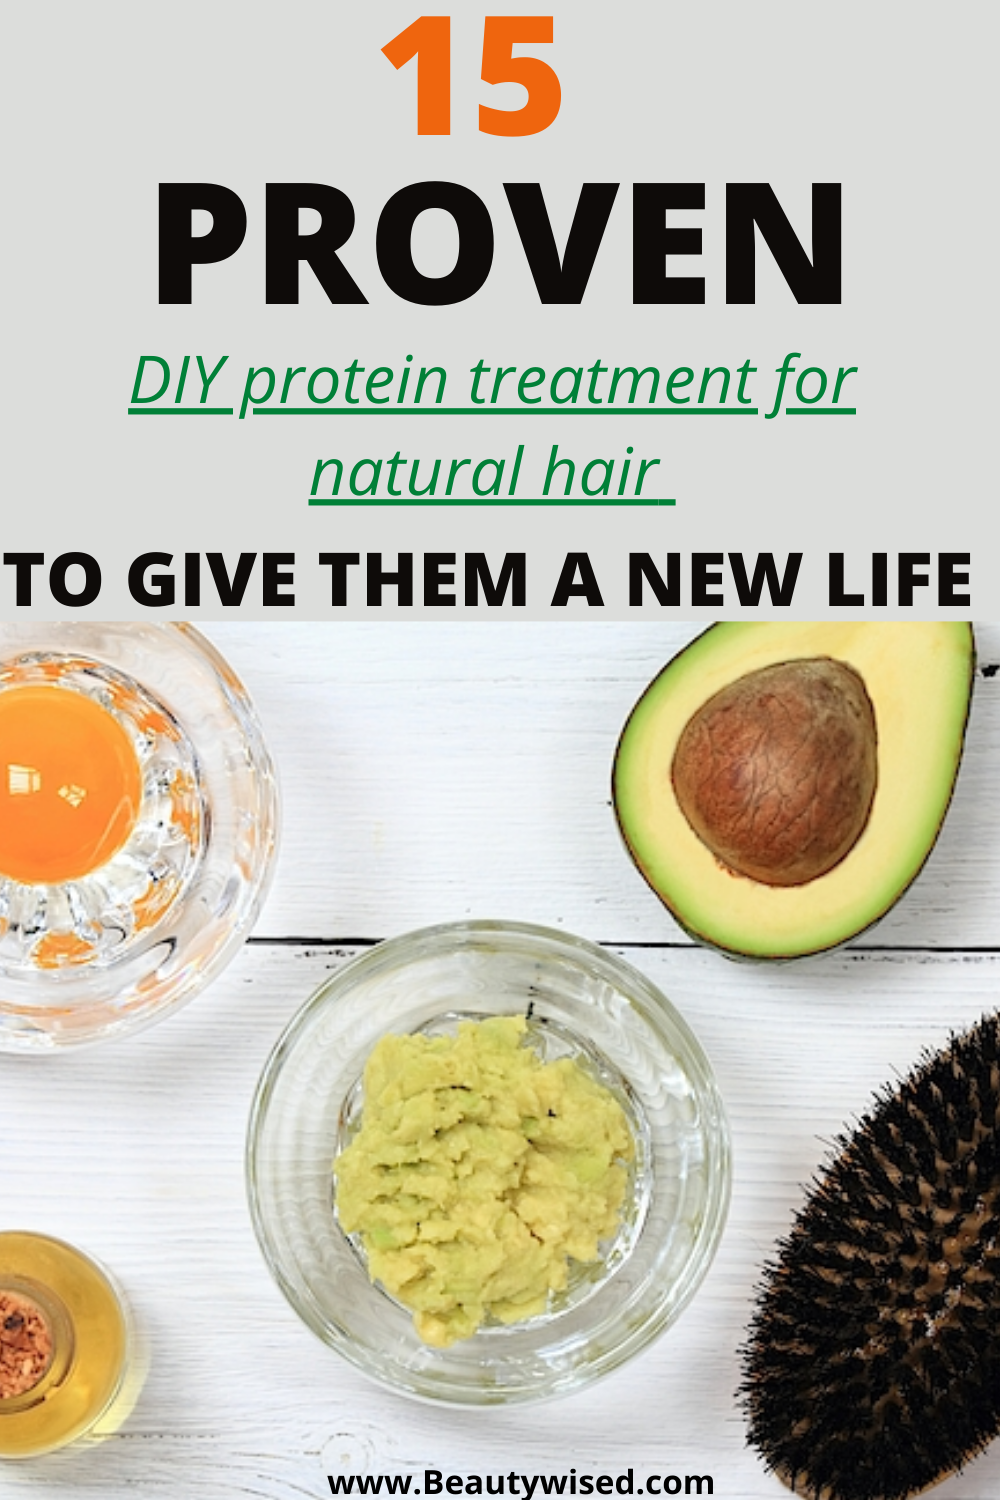 Give These Protein Hair Treatments For Your Natural Hair A Try And Thank Me La In 2020 Hair Protein Treatment Products Protein Treatment Natural Hair Protein Treatment